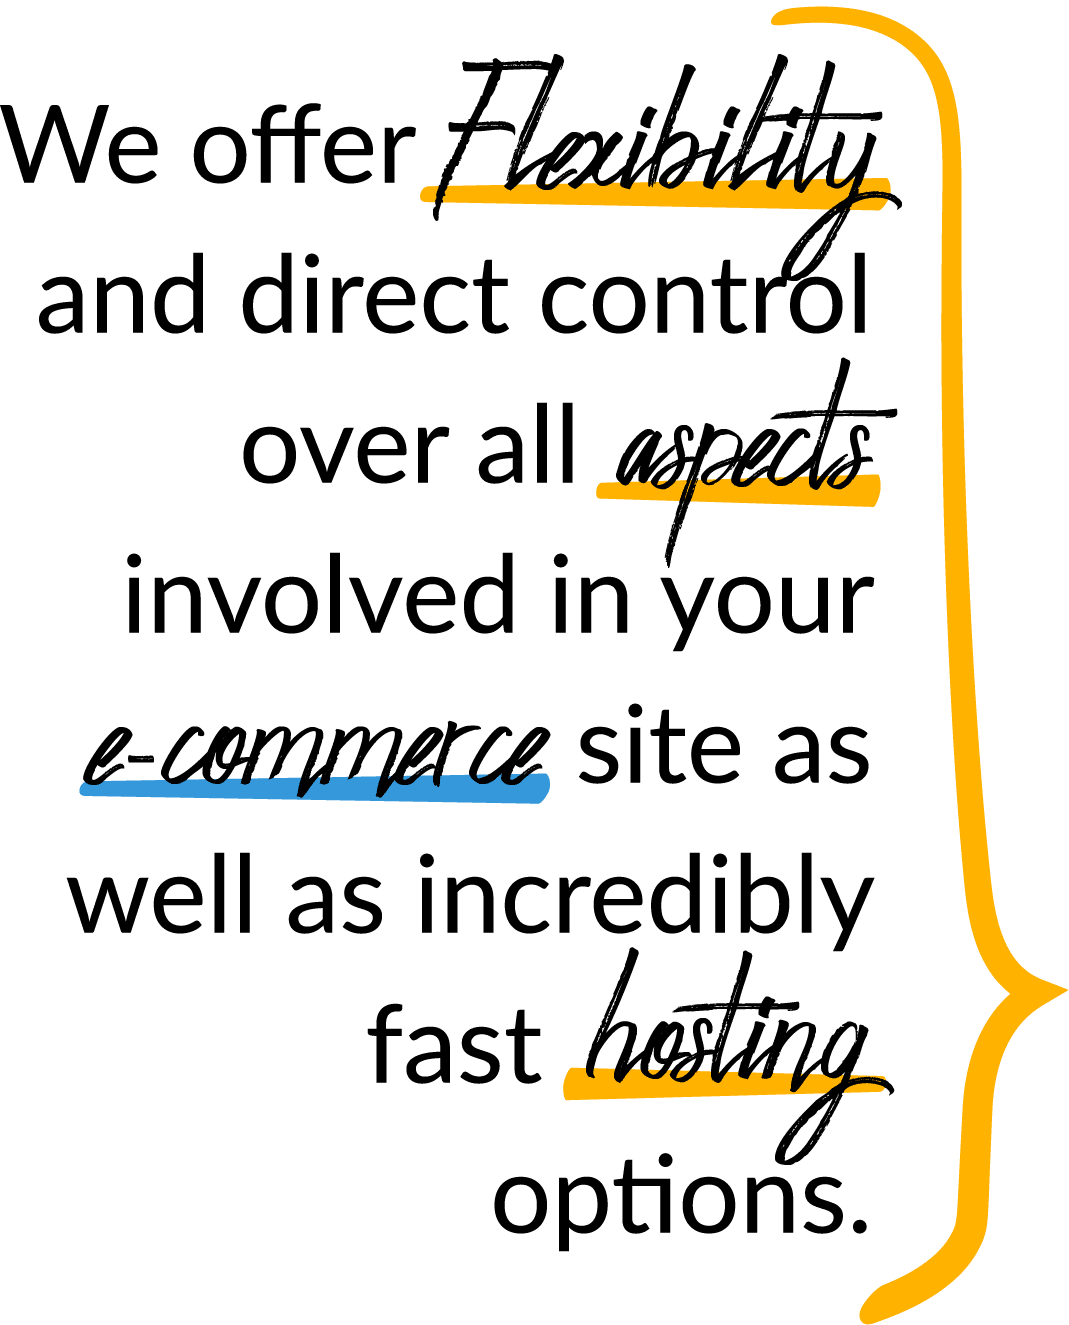 We offer flexibility and direct control over all aspects involved in your e-commerce site as well as incredibly fast hosting options